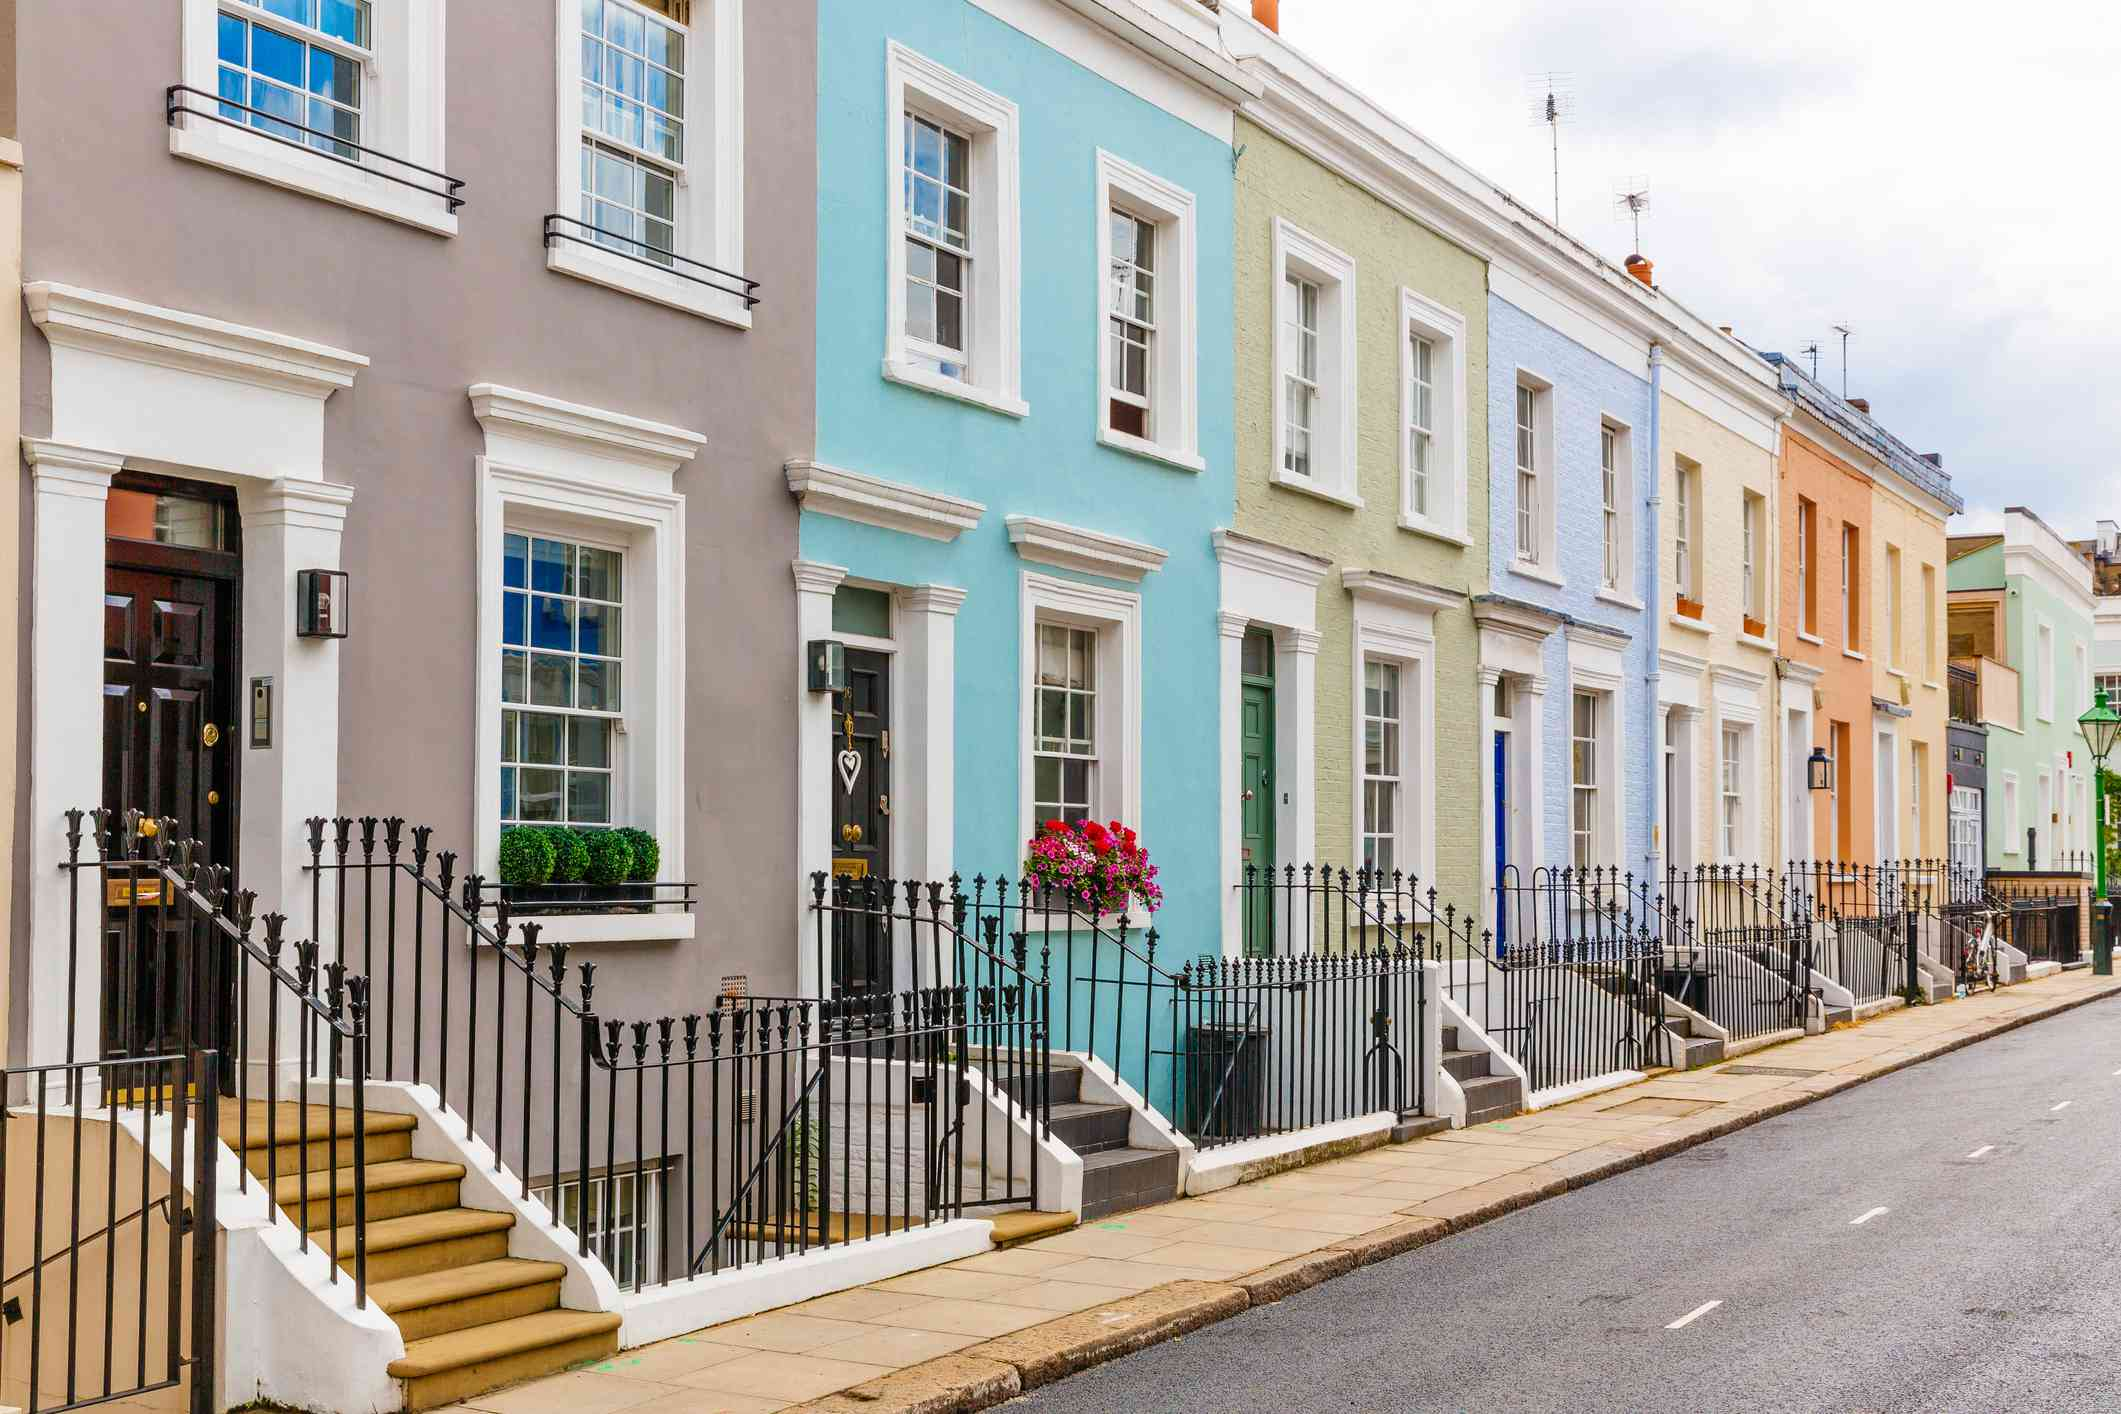 Rowhouses in Notting Hill, London